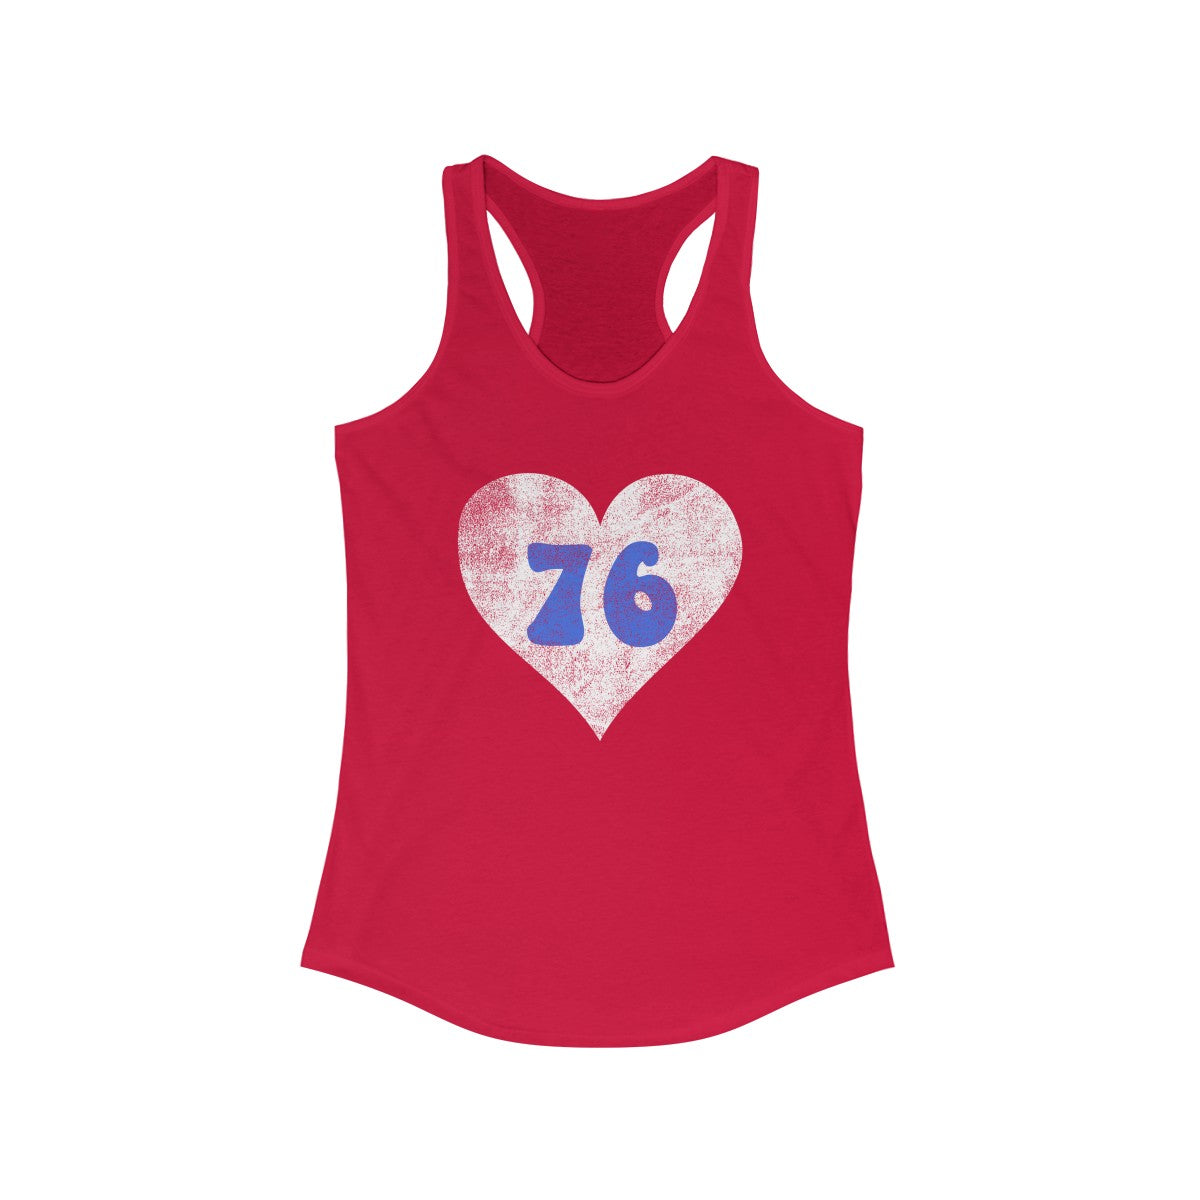 Philly 76 Love Women's Ideal Racerback Tank